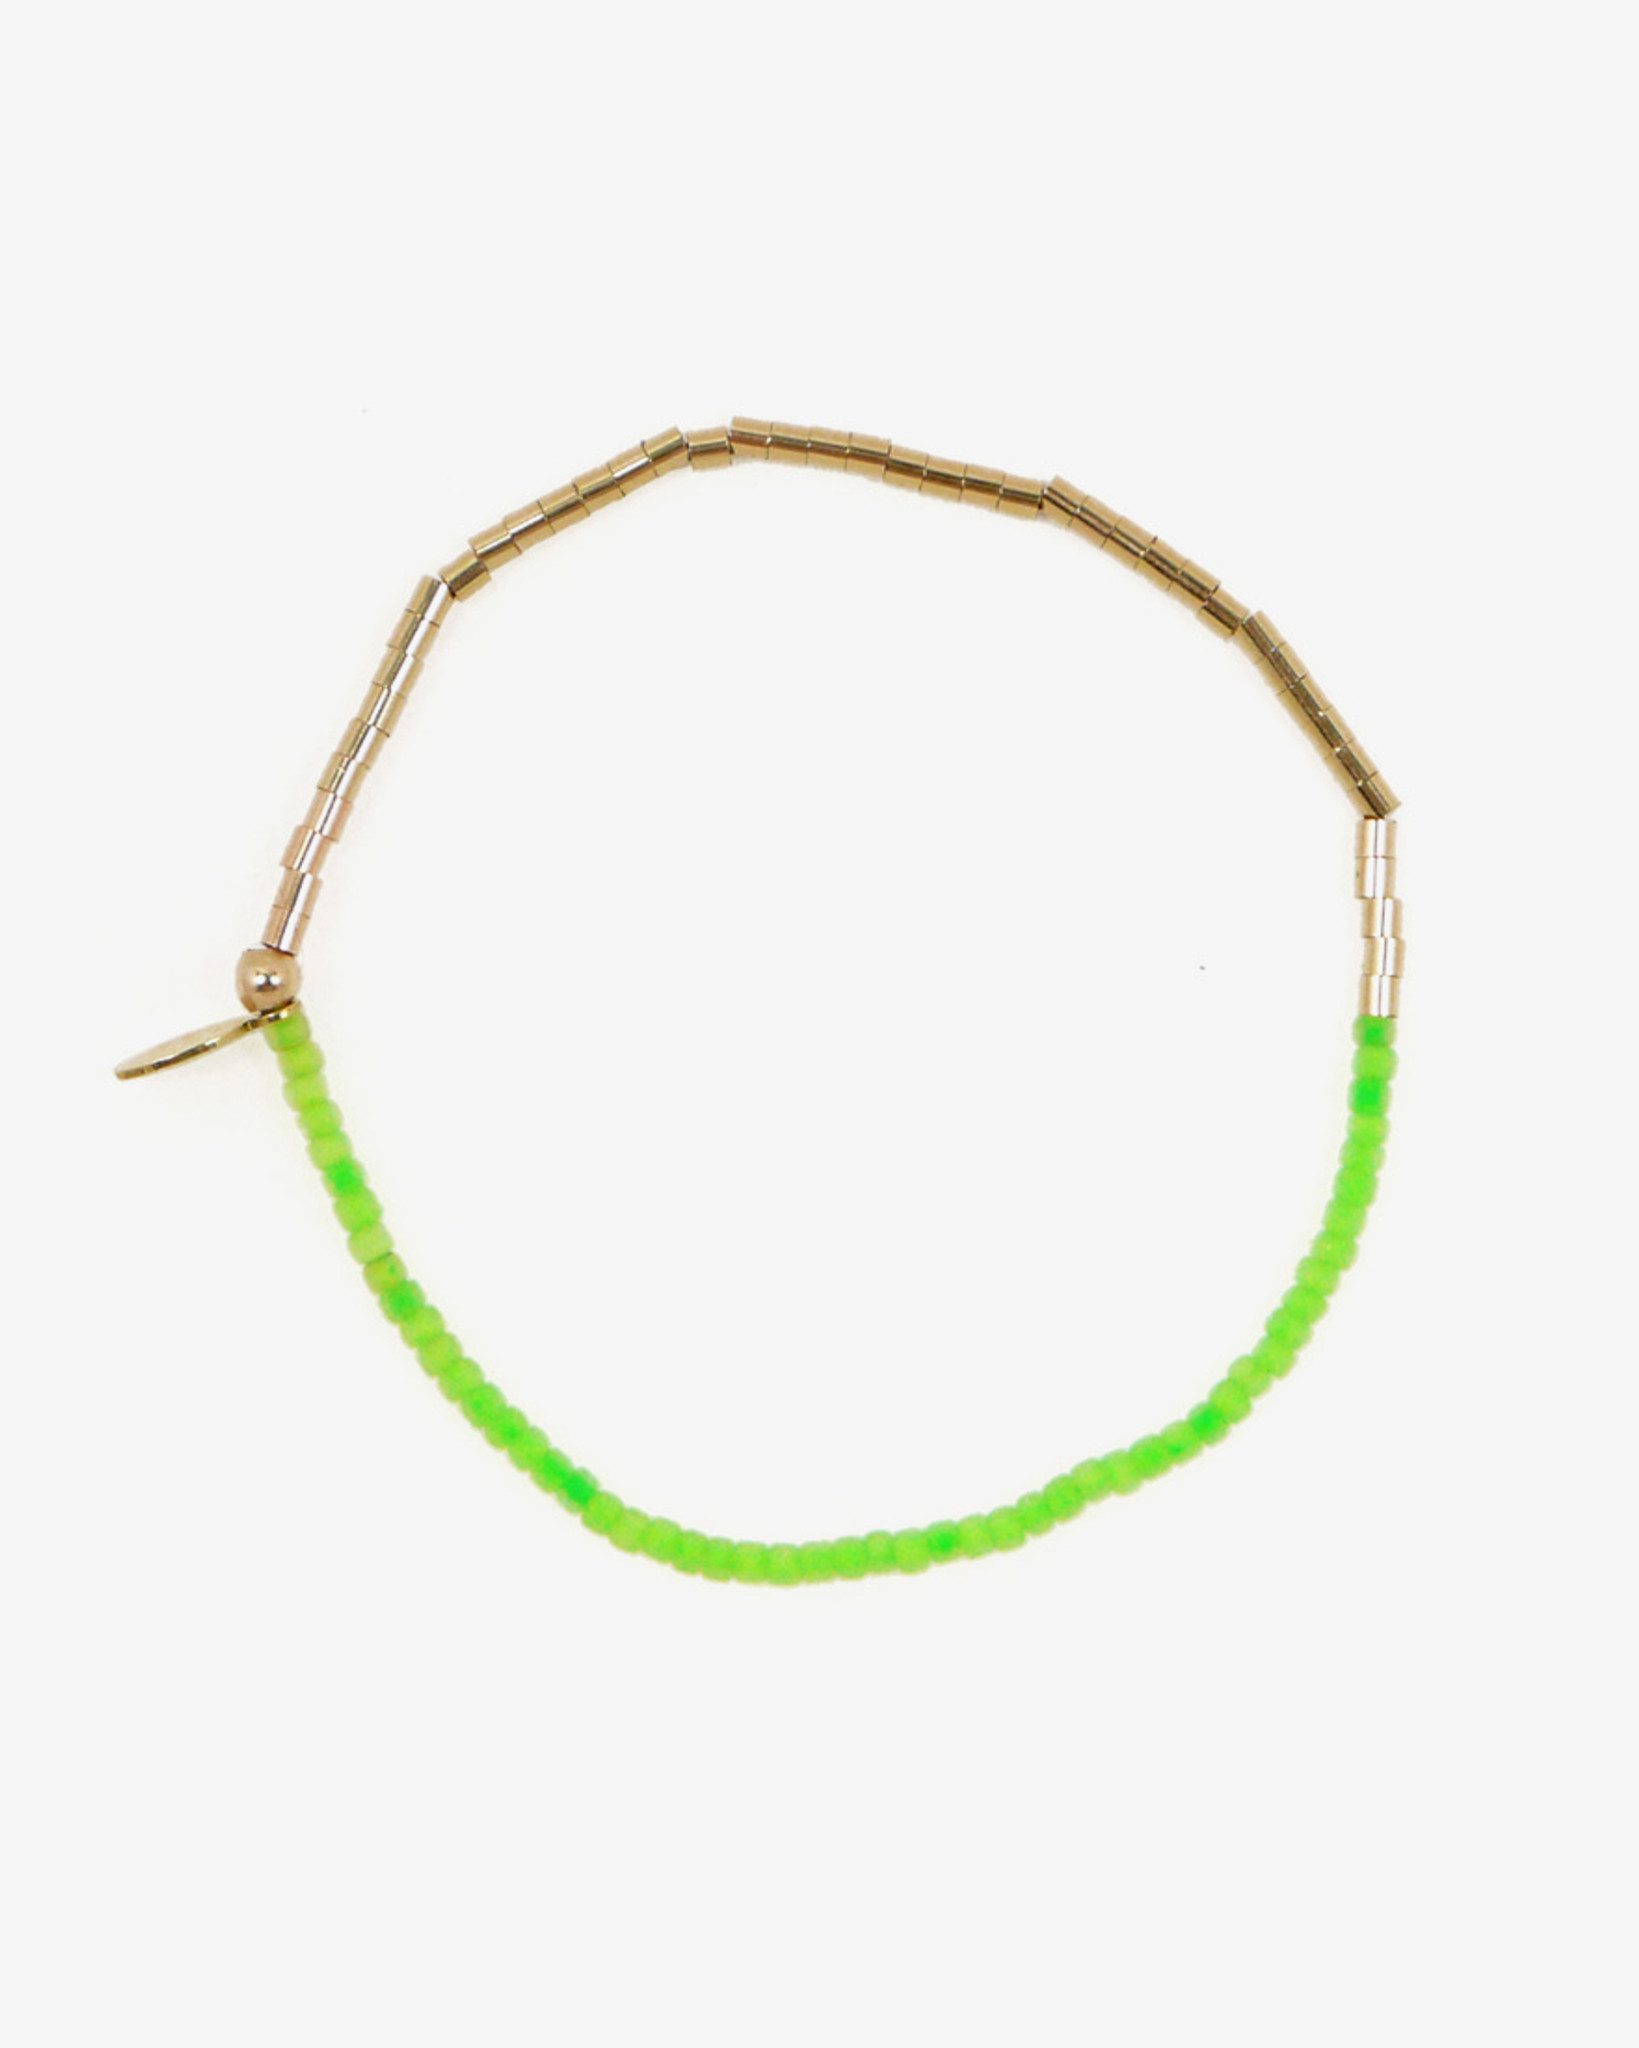 Neon-Green-Gold-Bead-Delicate-Friendship-Bracelet-by-Fine-Jewelry-Designer-Nektar-De-Stagni